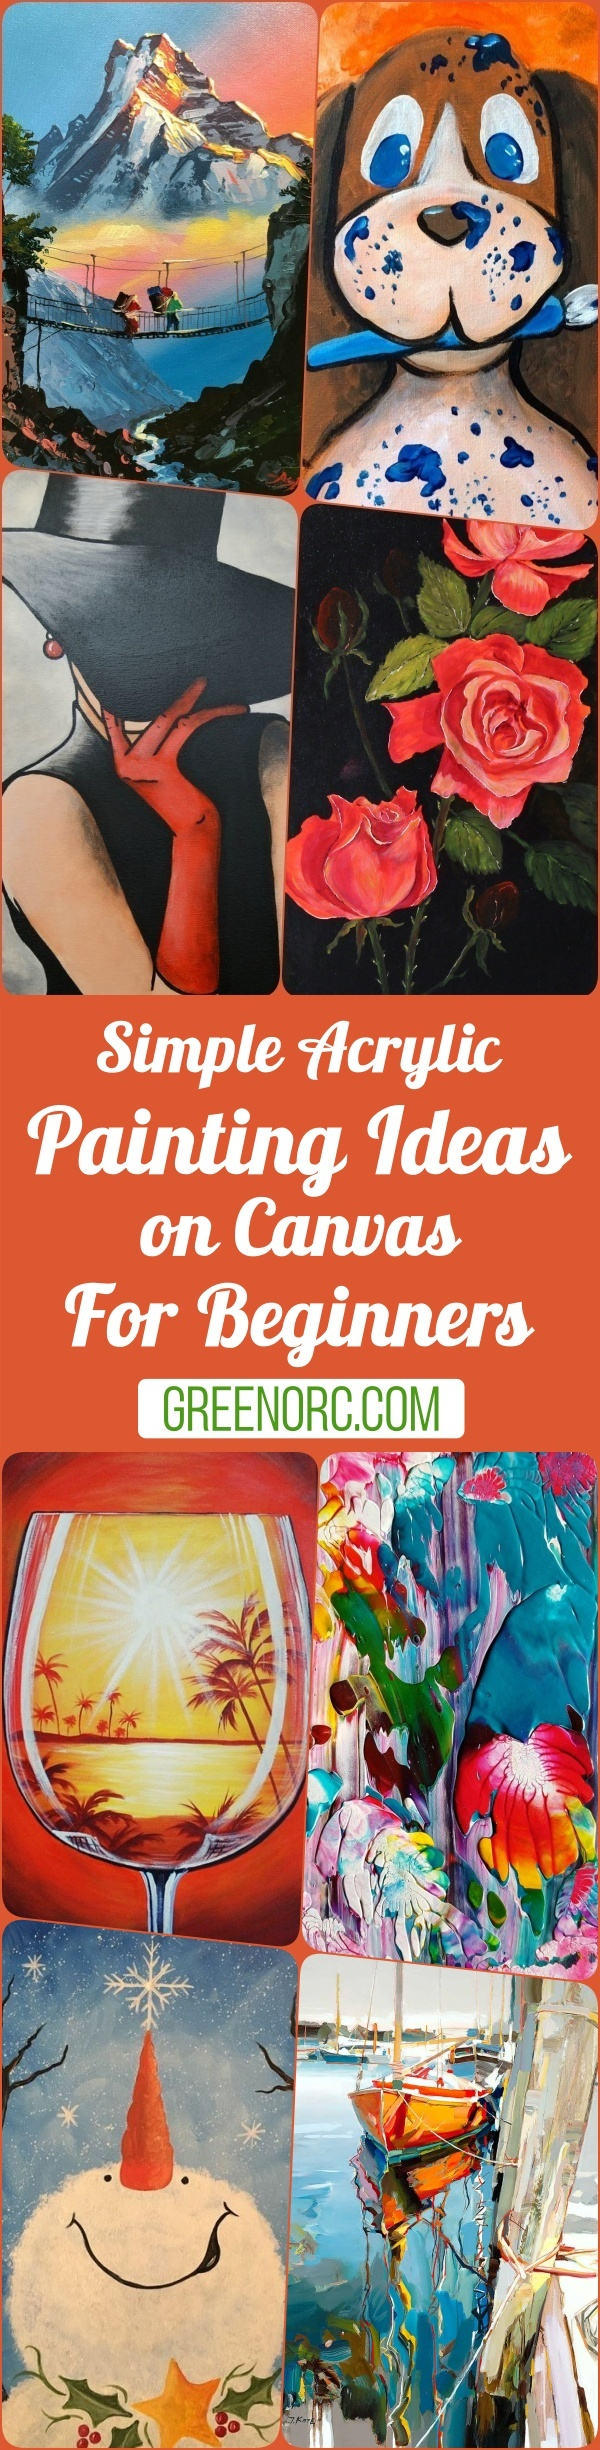 Simple Acrylic Painting Ideas on Canvas For Beginners